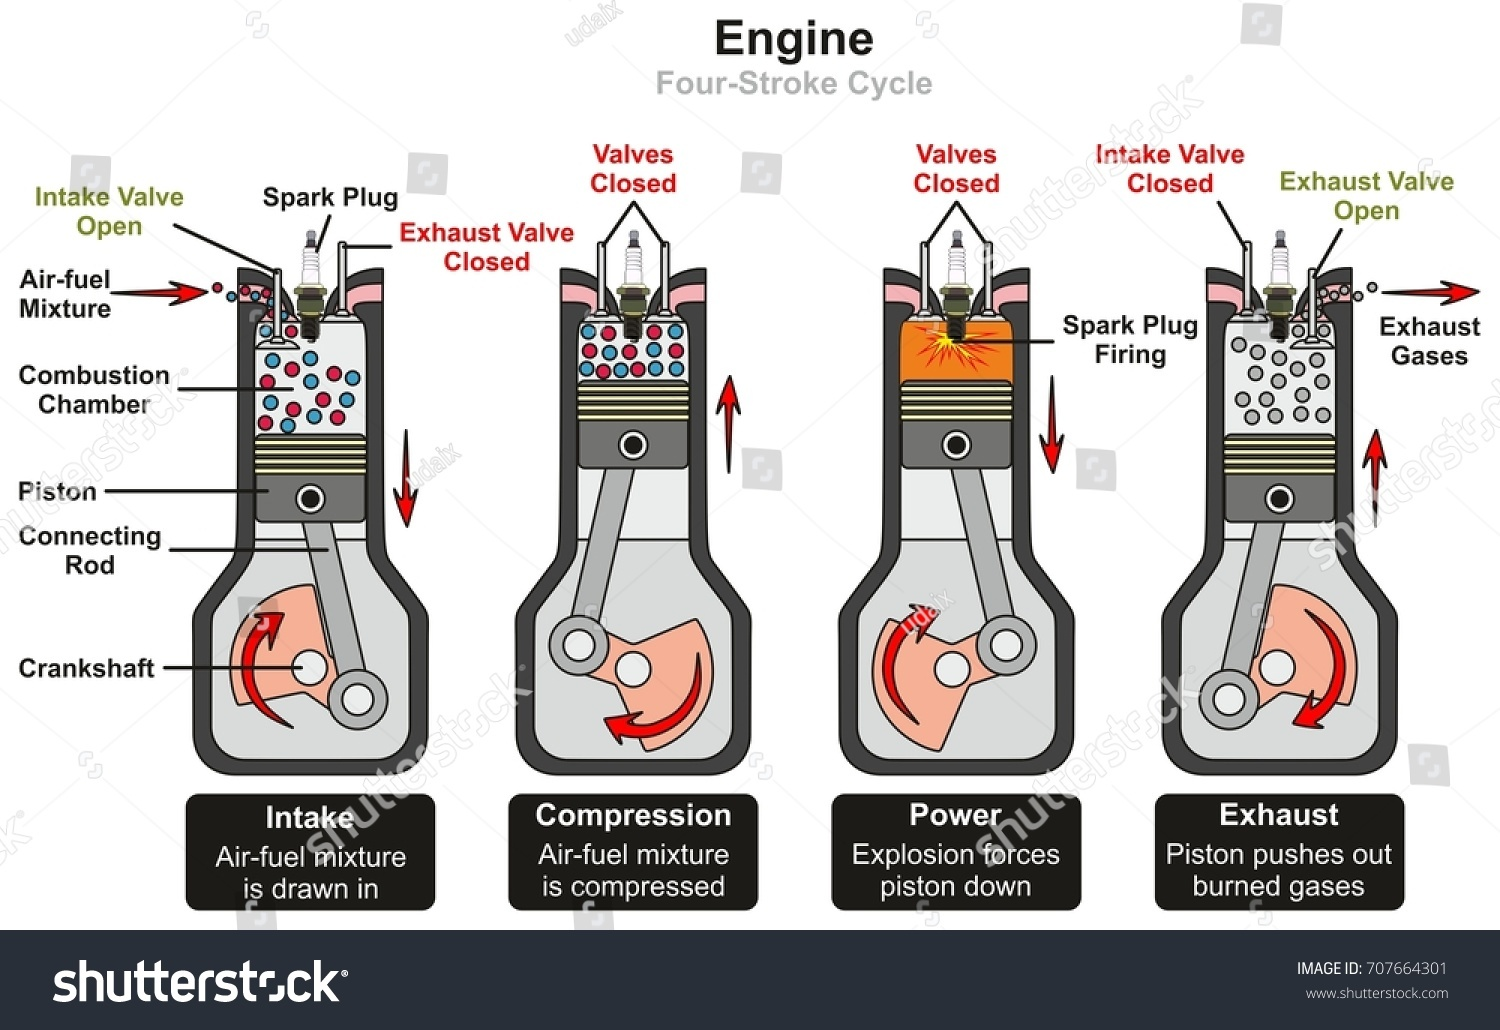 Engine Four Stroke Cycle infographic diagram including stages of intake  compression power and exhaust showing parts